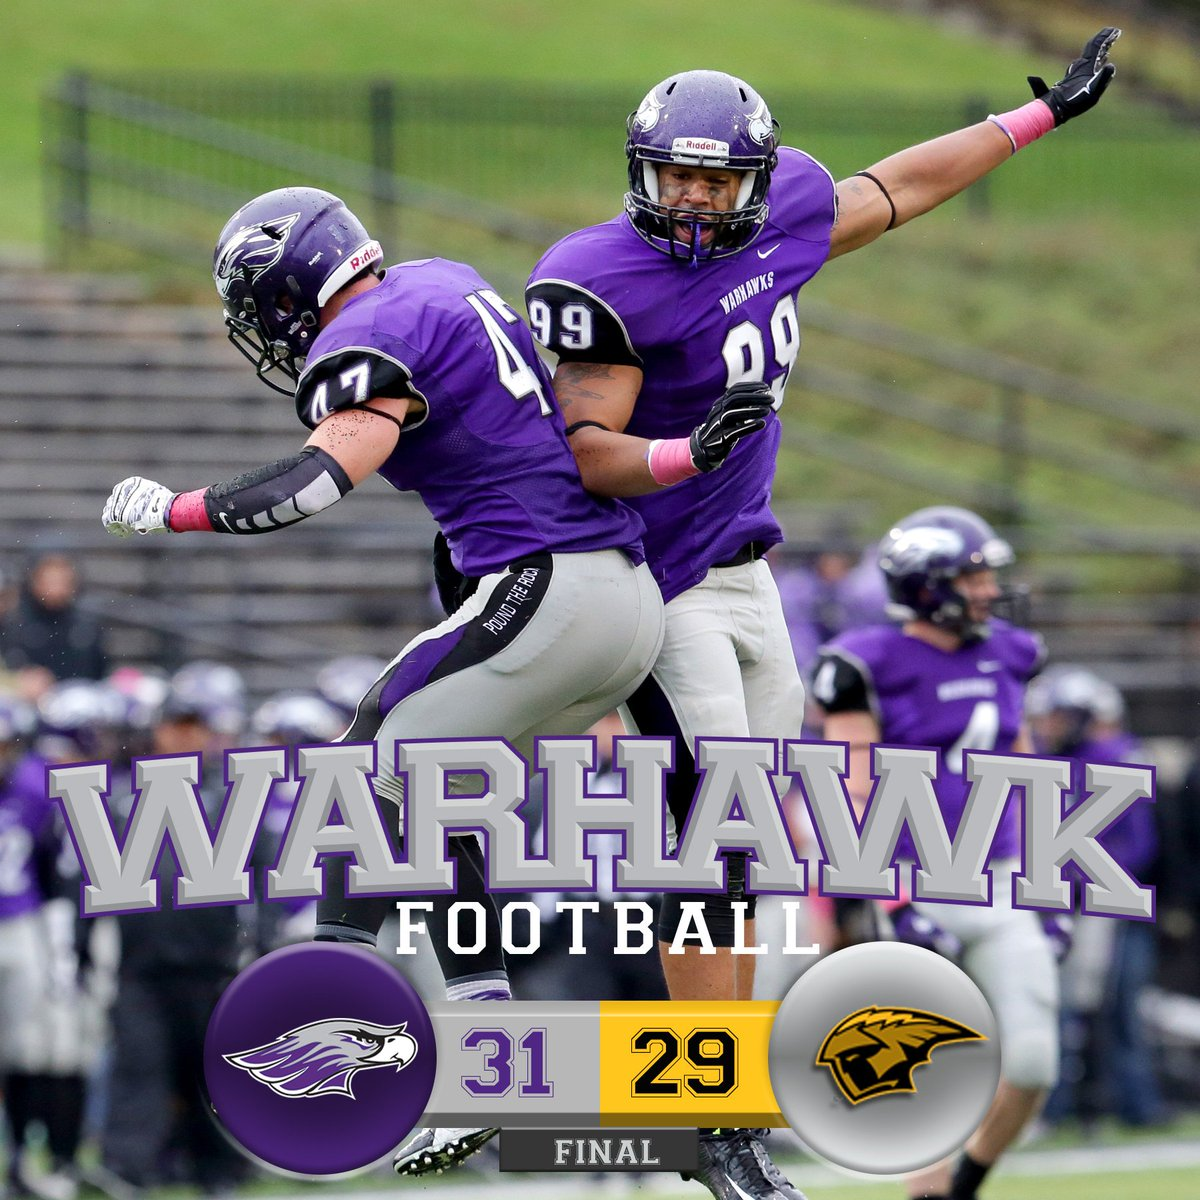 Warhawks defeat the Titans and will face Mount Union in the national semifinal. #BleedPurple https://t.co/y5XsS02ktP